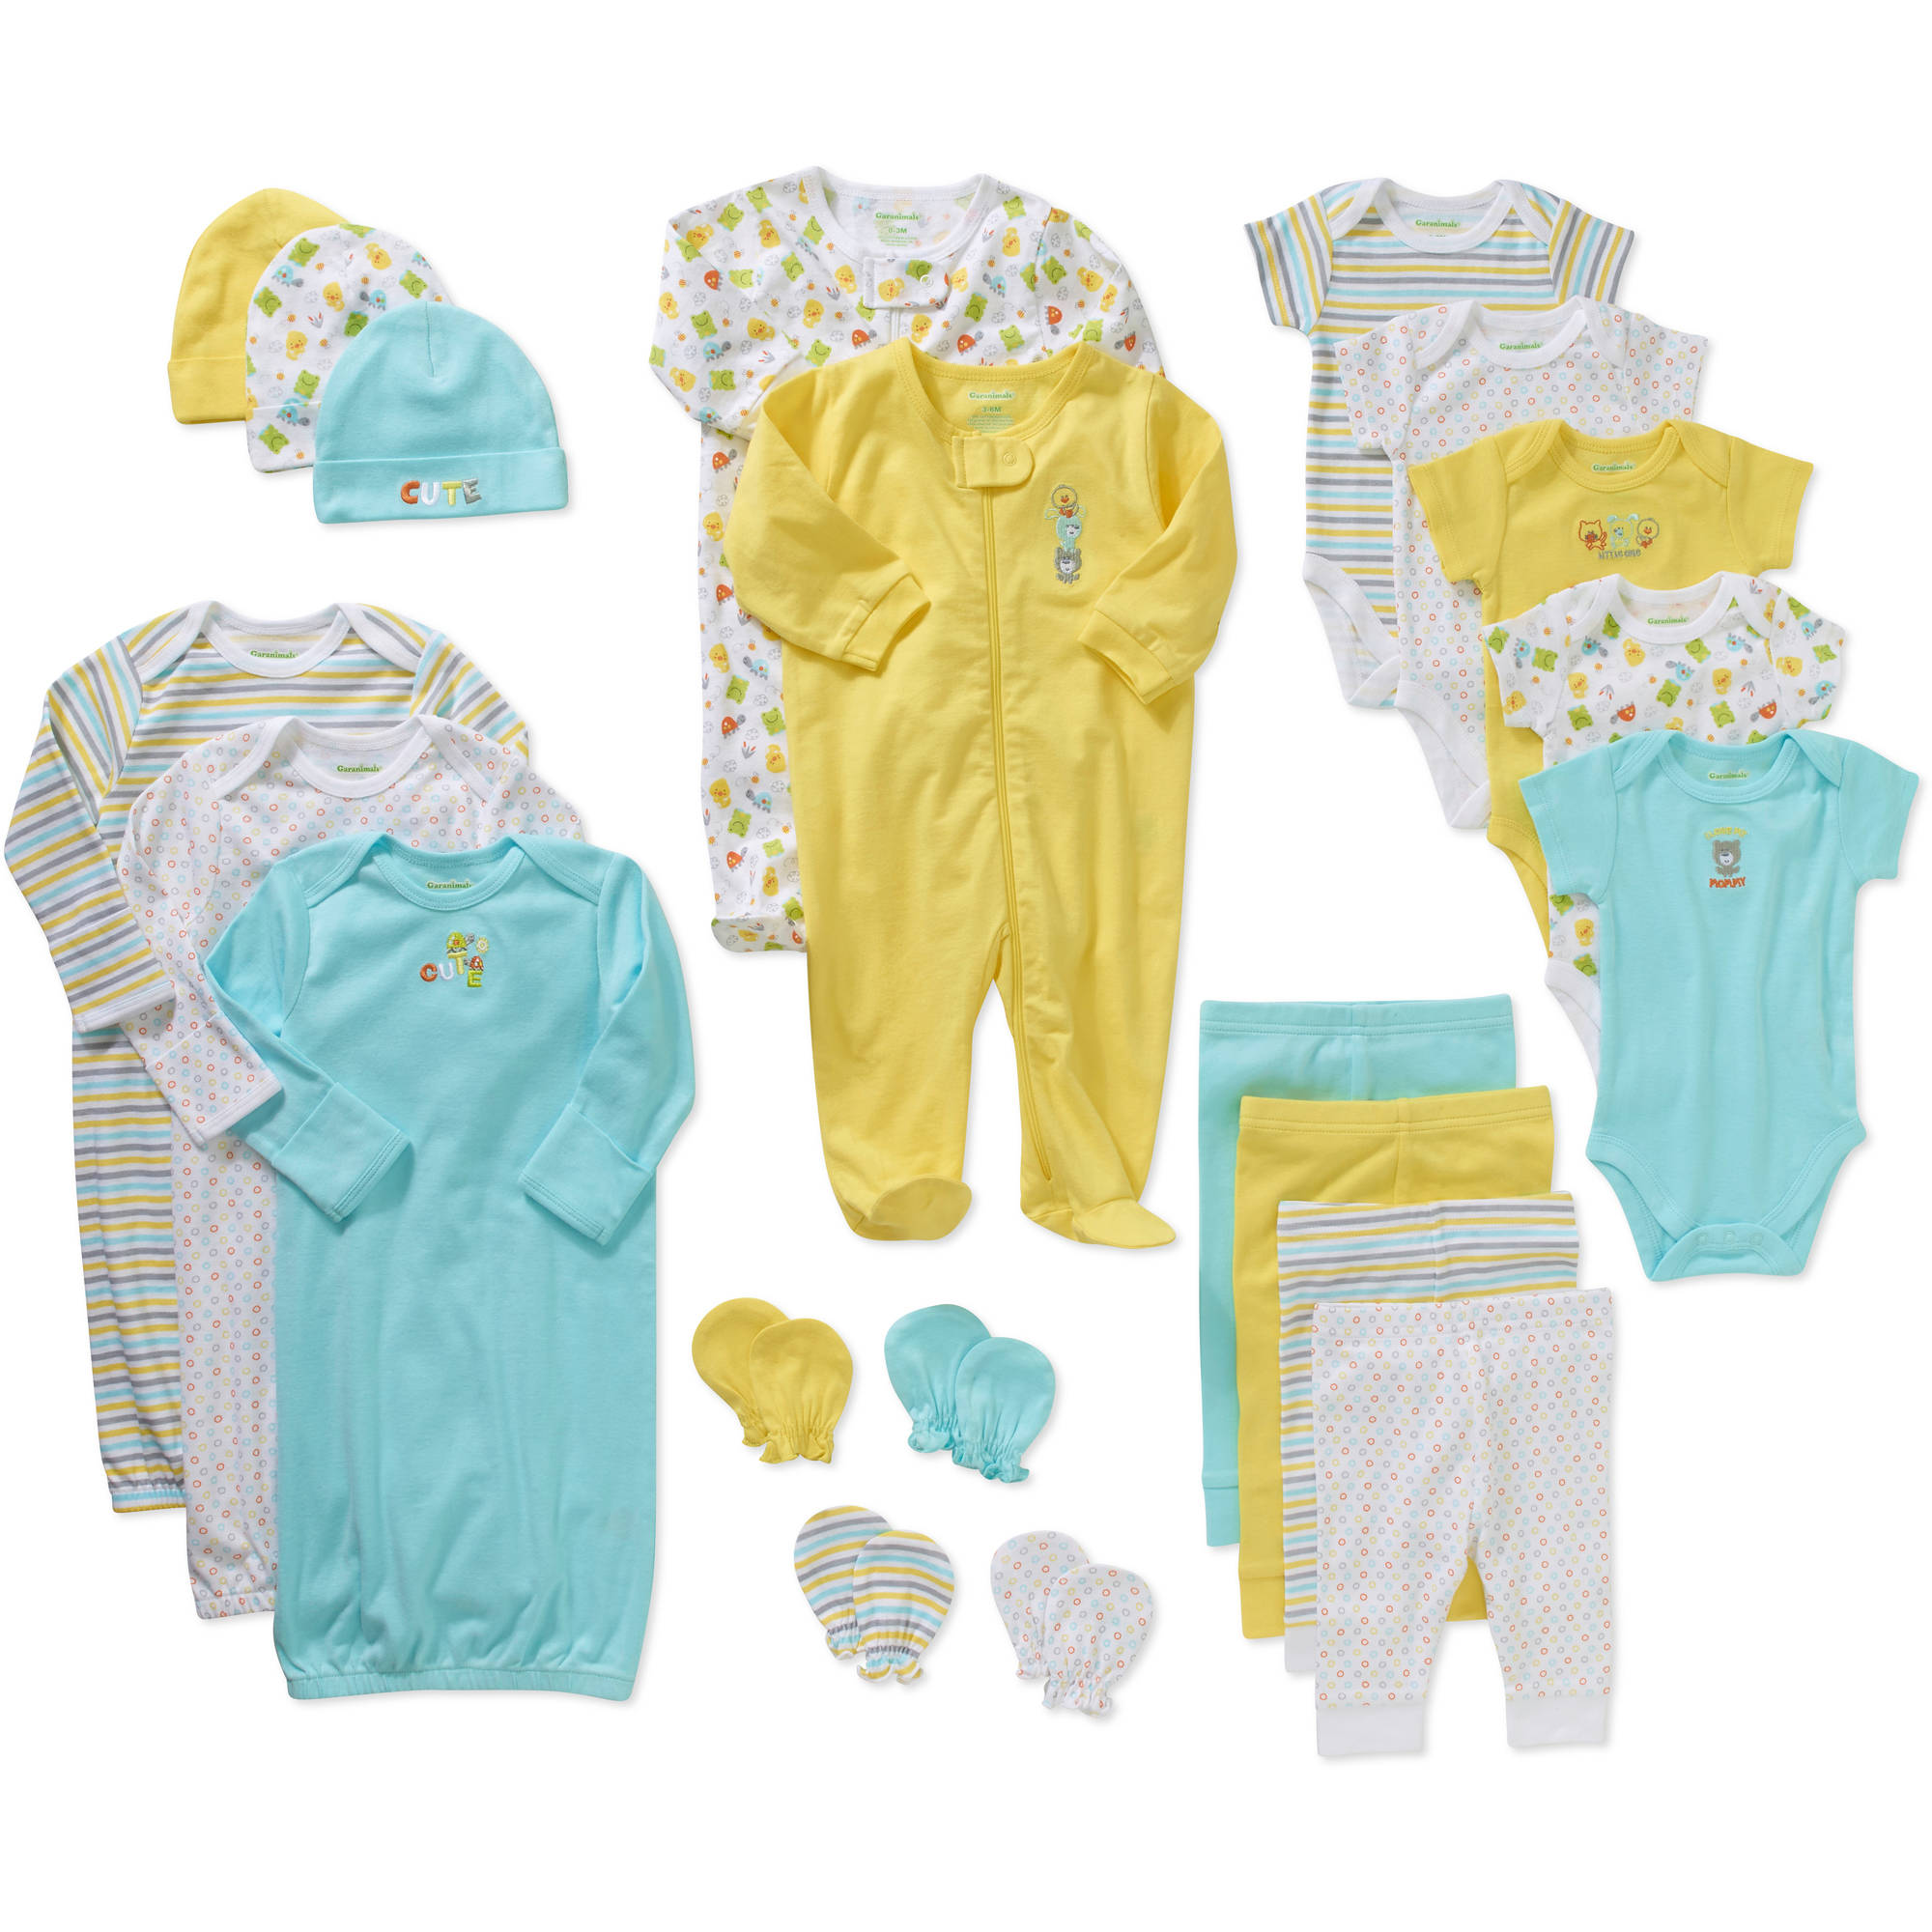 Garanimals Newborn Unisex 21 Pc Layette Baby Shower Gift Set